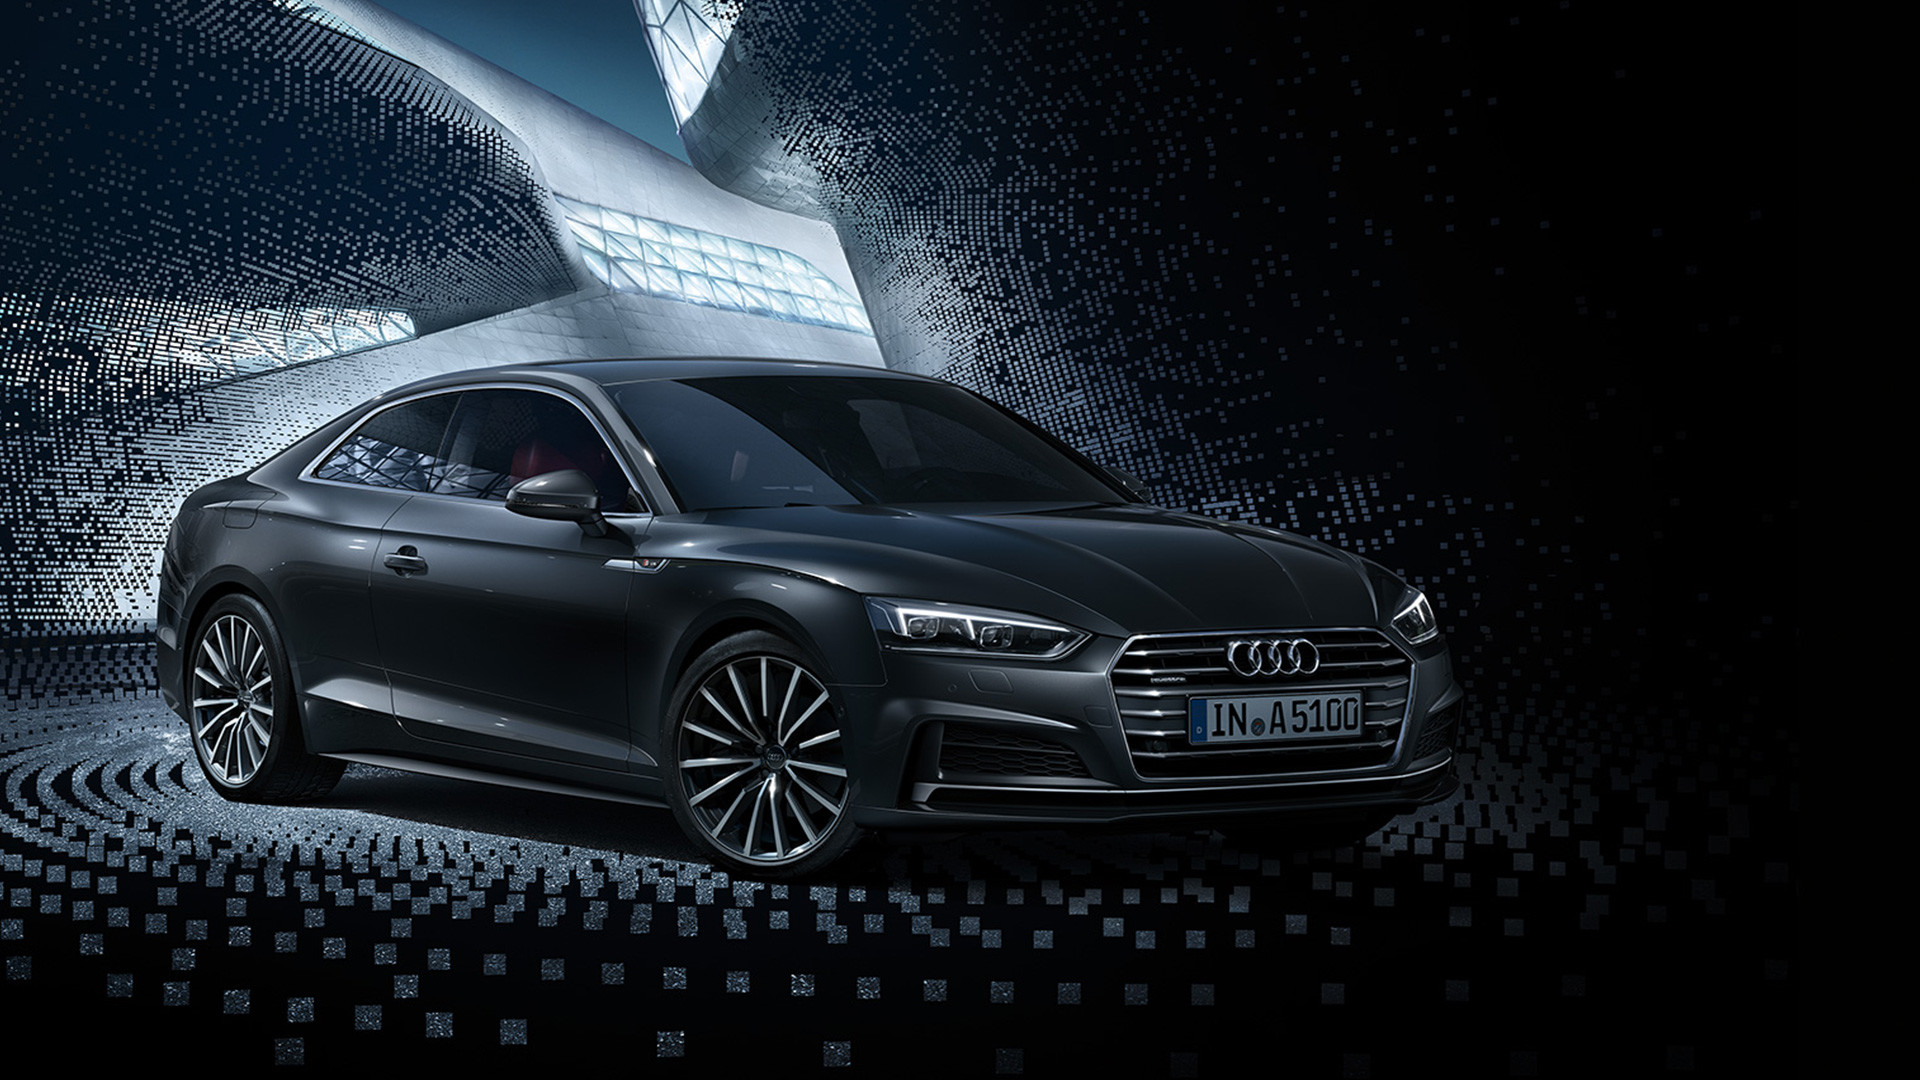 1920x1080 Sporty elegance - the new Audi A5 and S5 Coupé